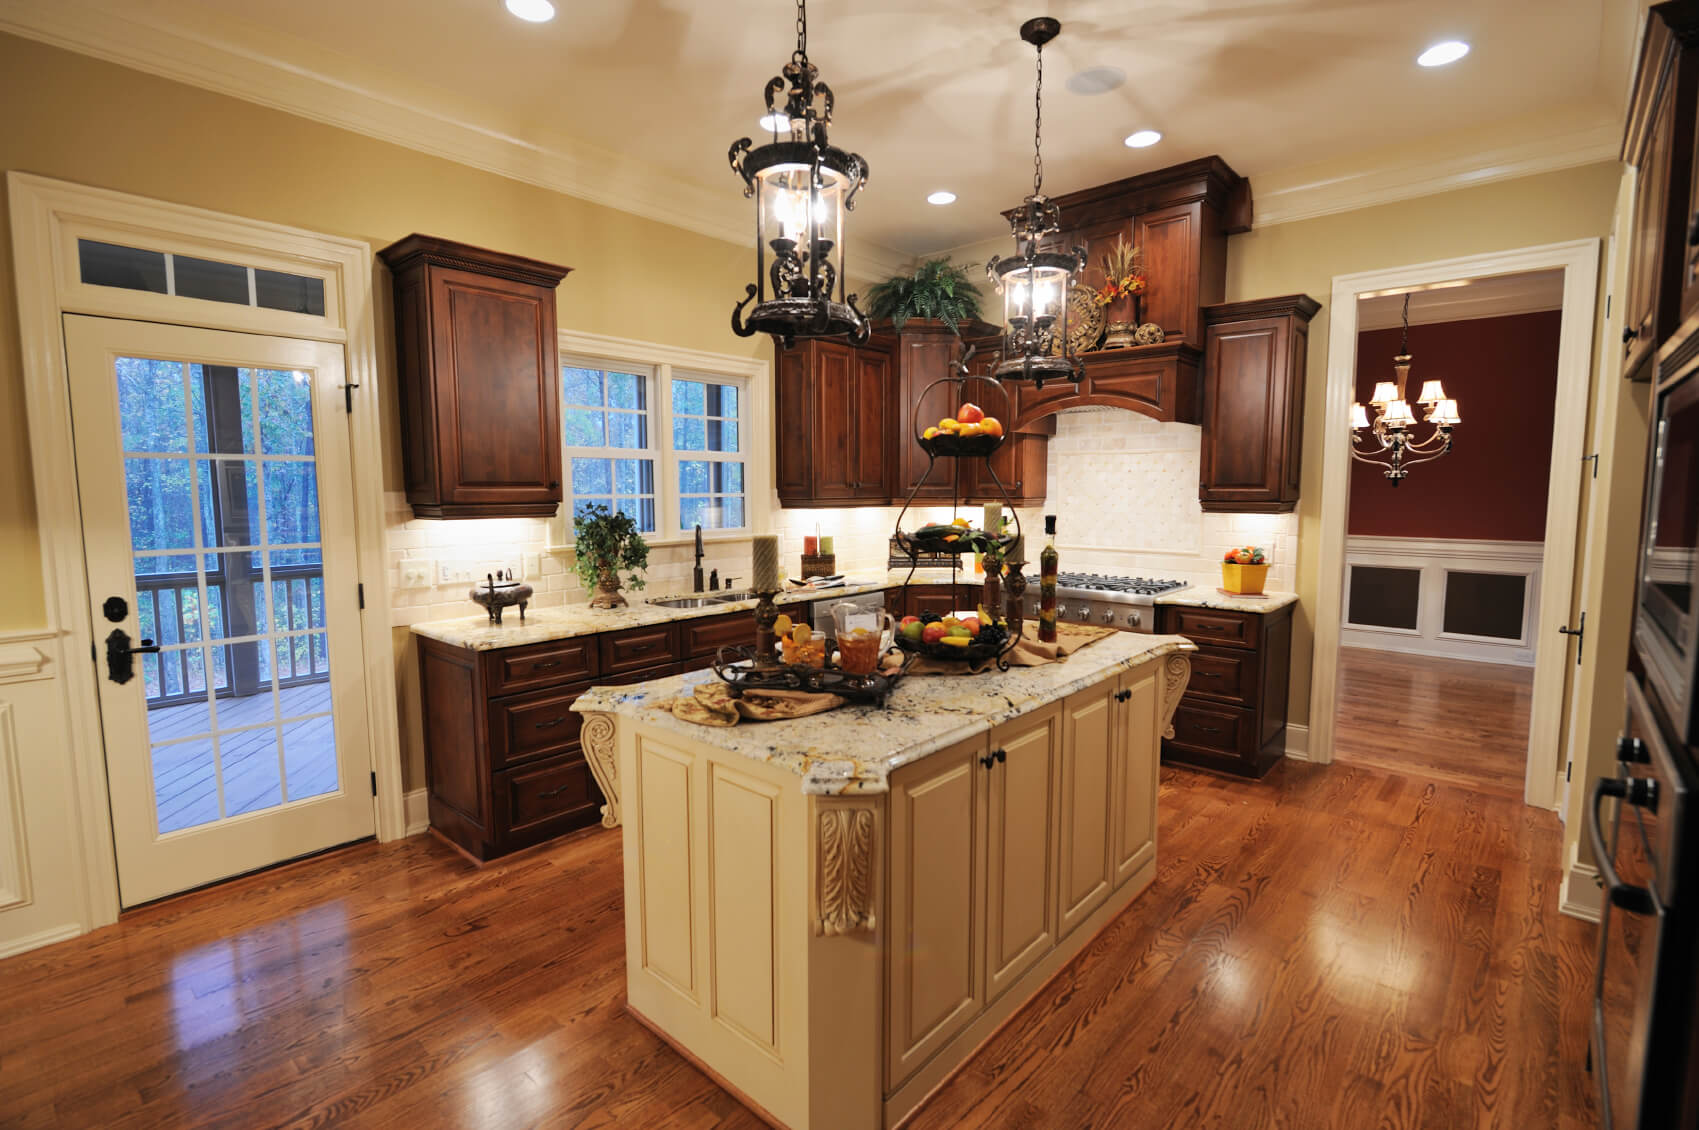 cabinetry contrasts with beige island and wall color in this kitchen